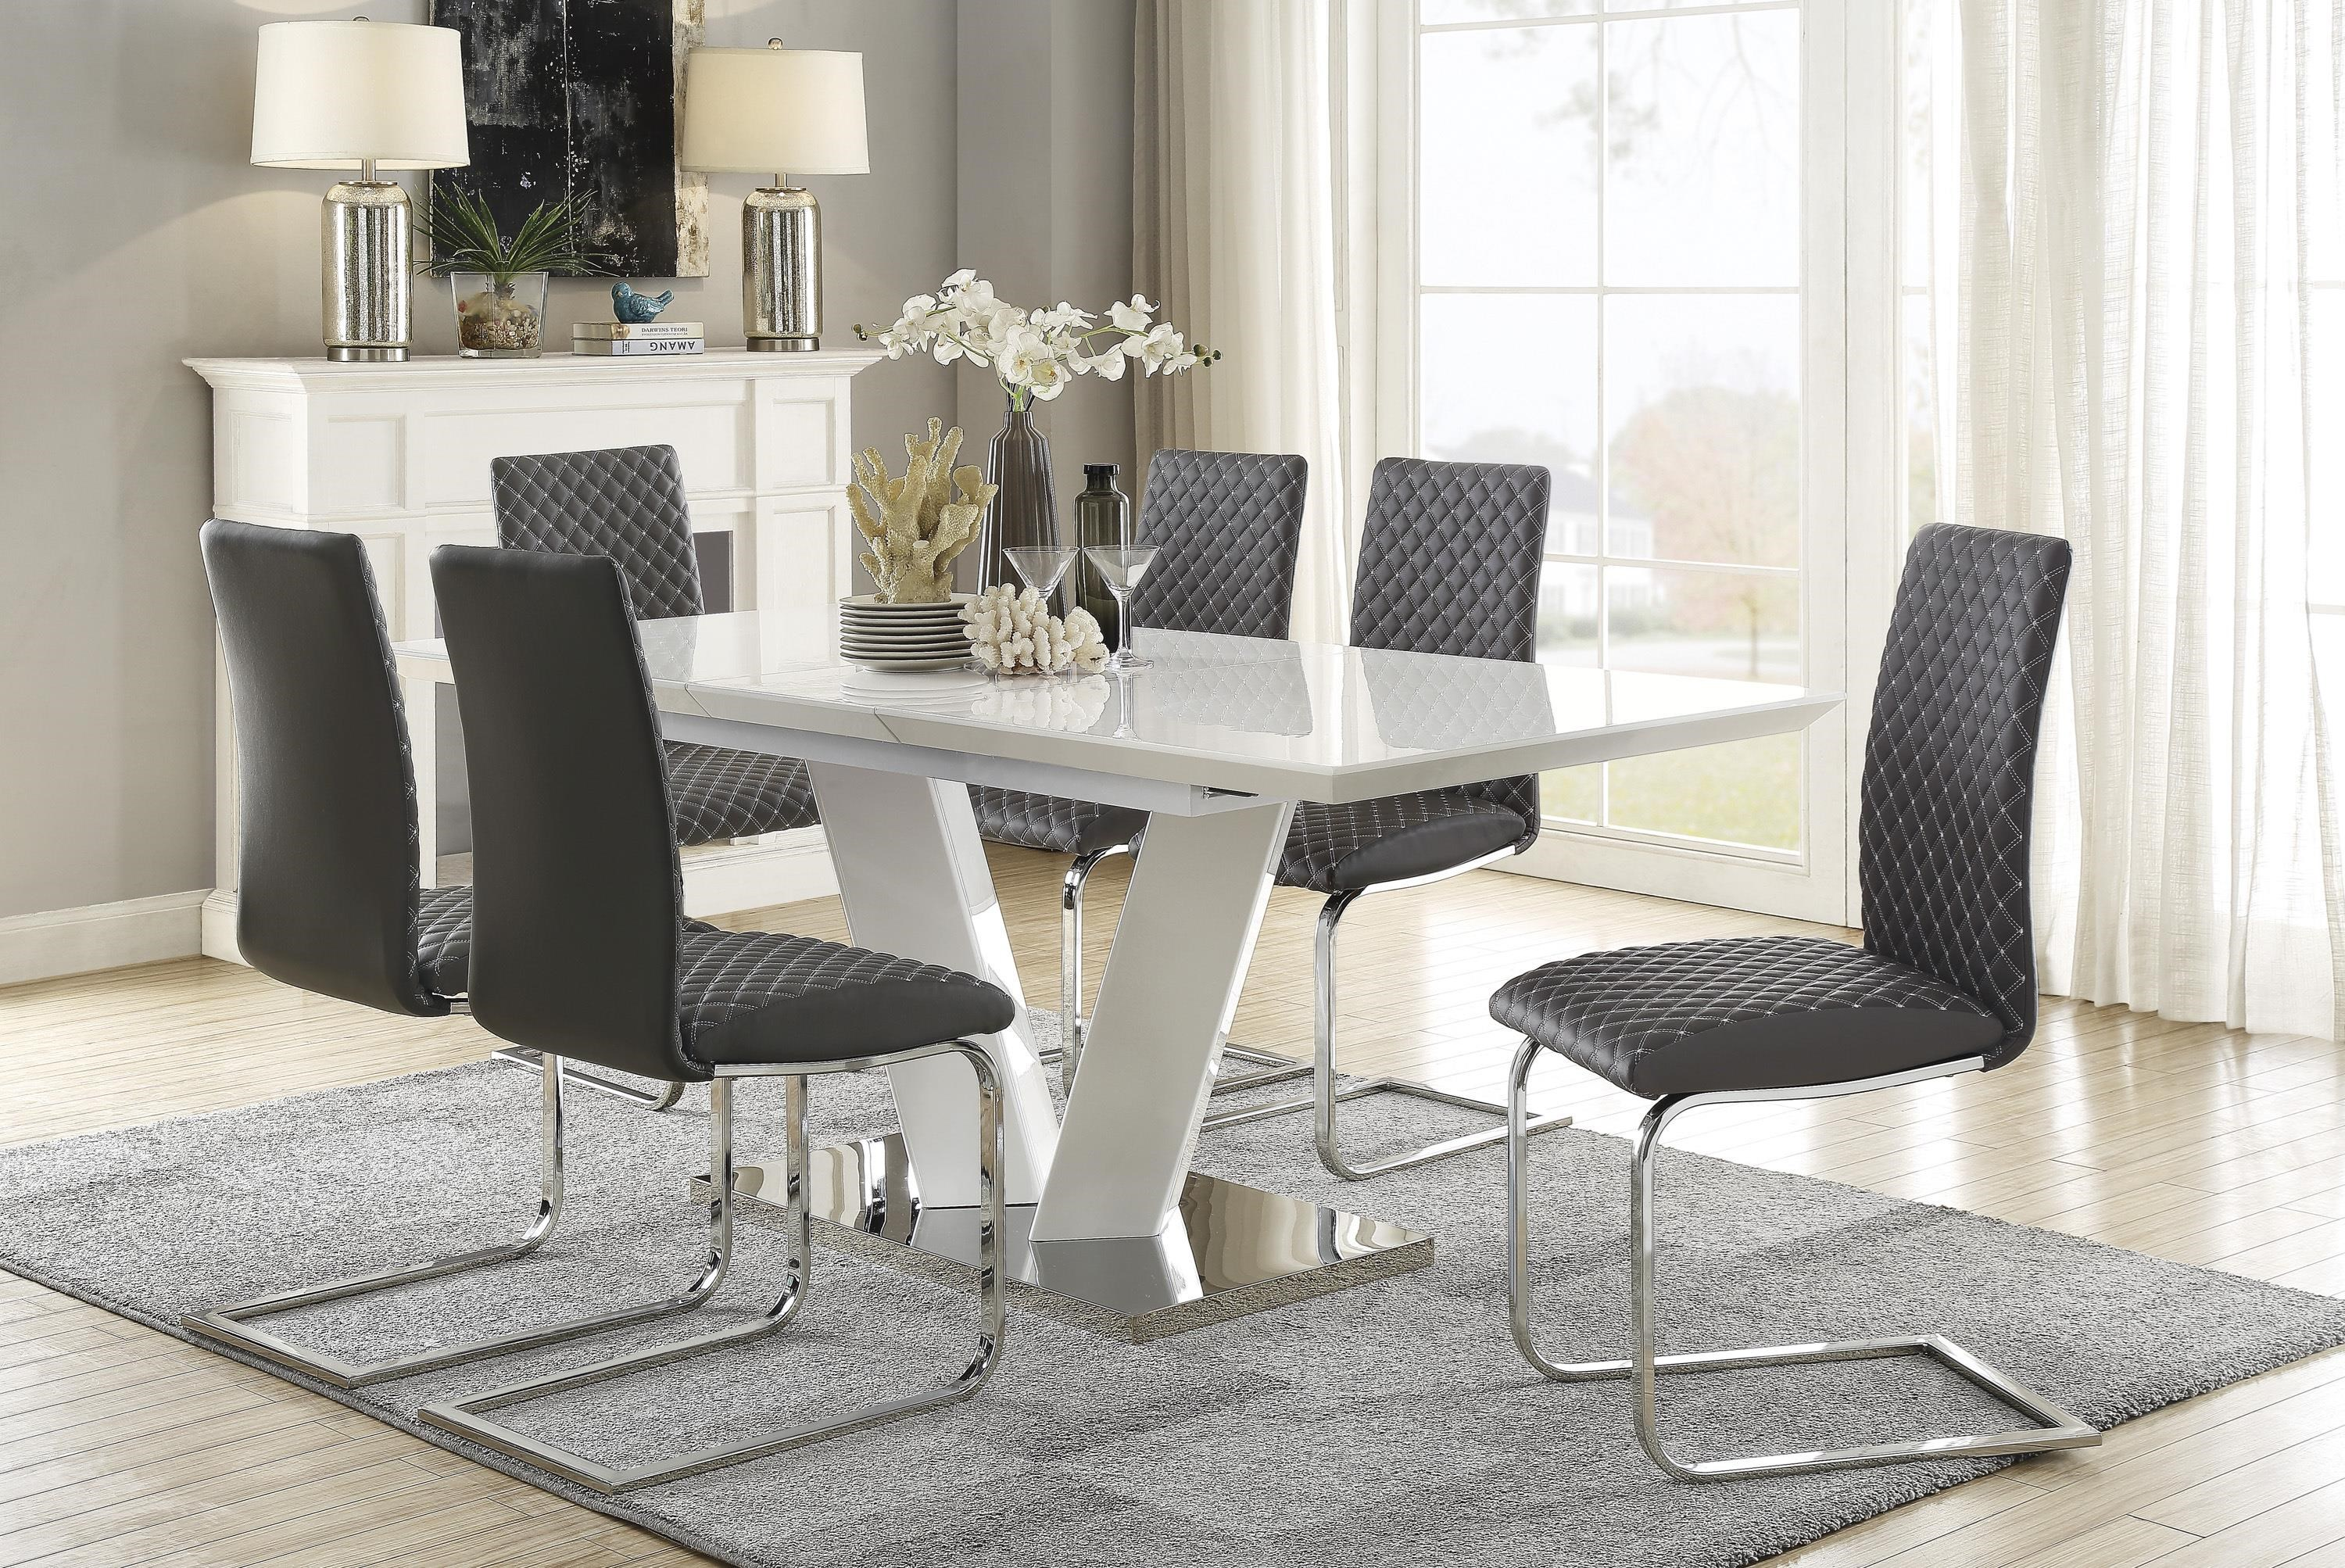 Yannis 7-Piece Dining Table Set by Homelegance at Beck's Furniture